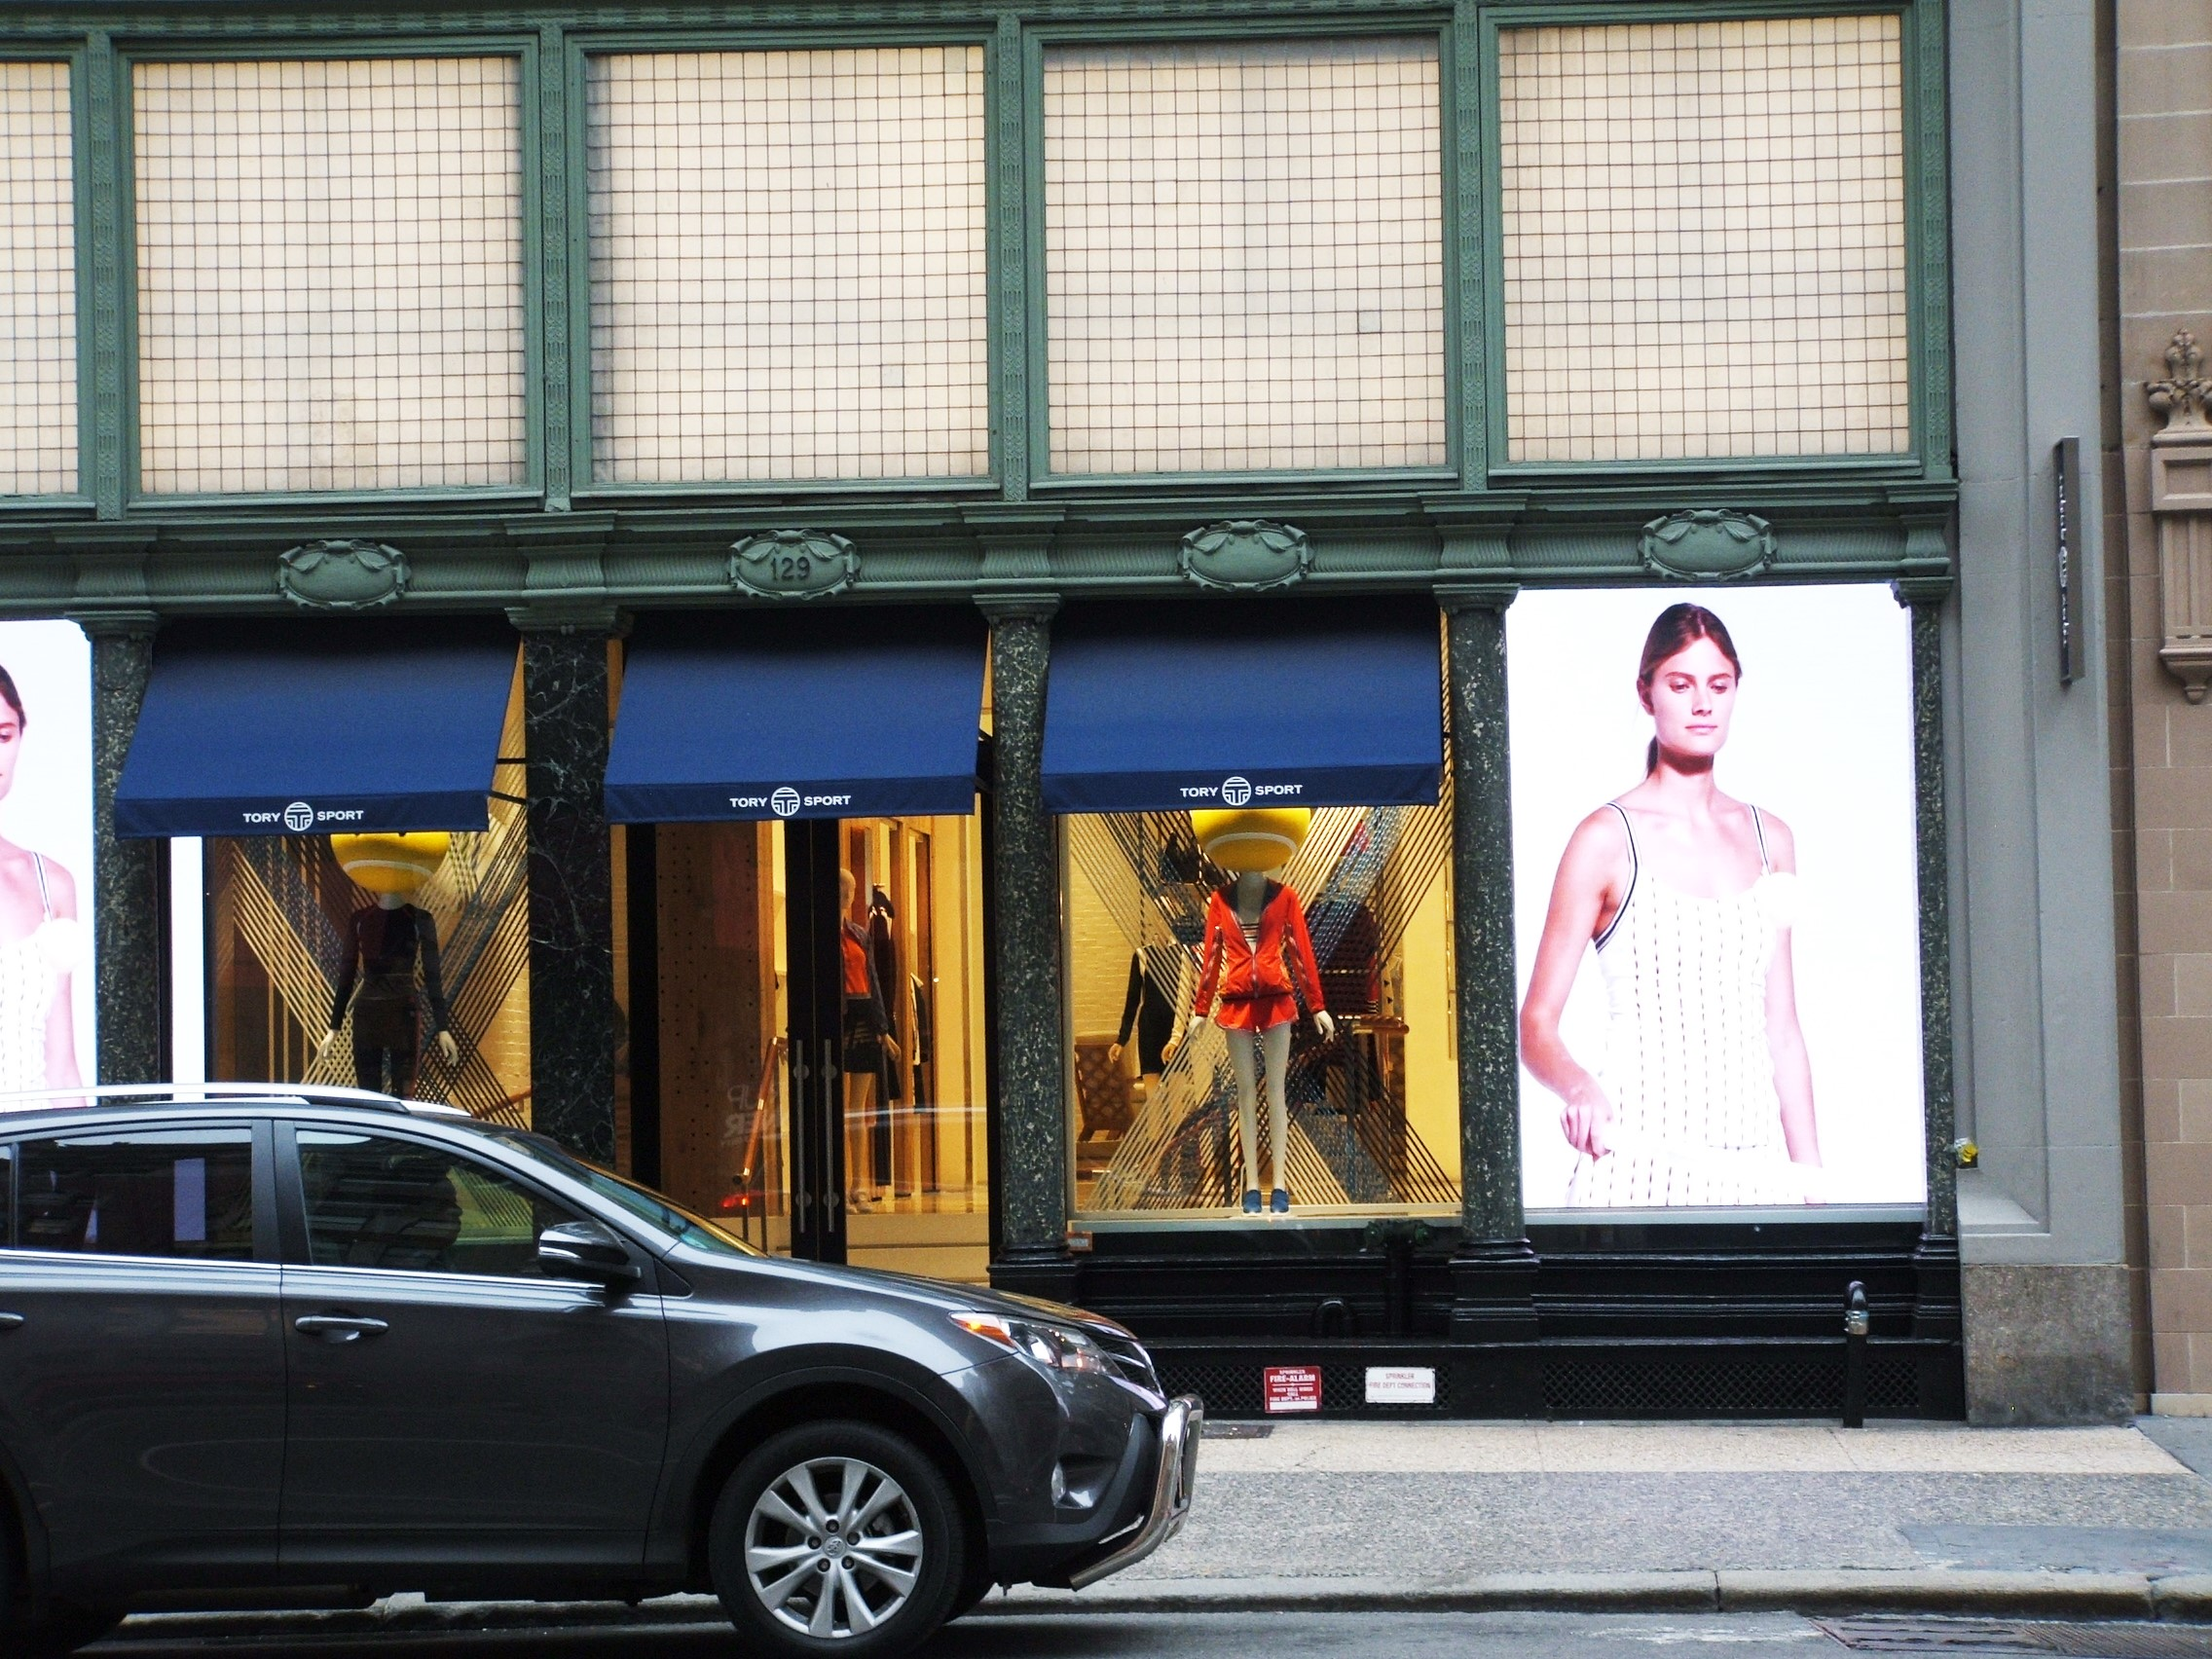 photo: Tory Sport on 5th Avenue